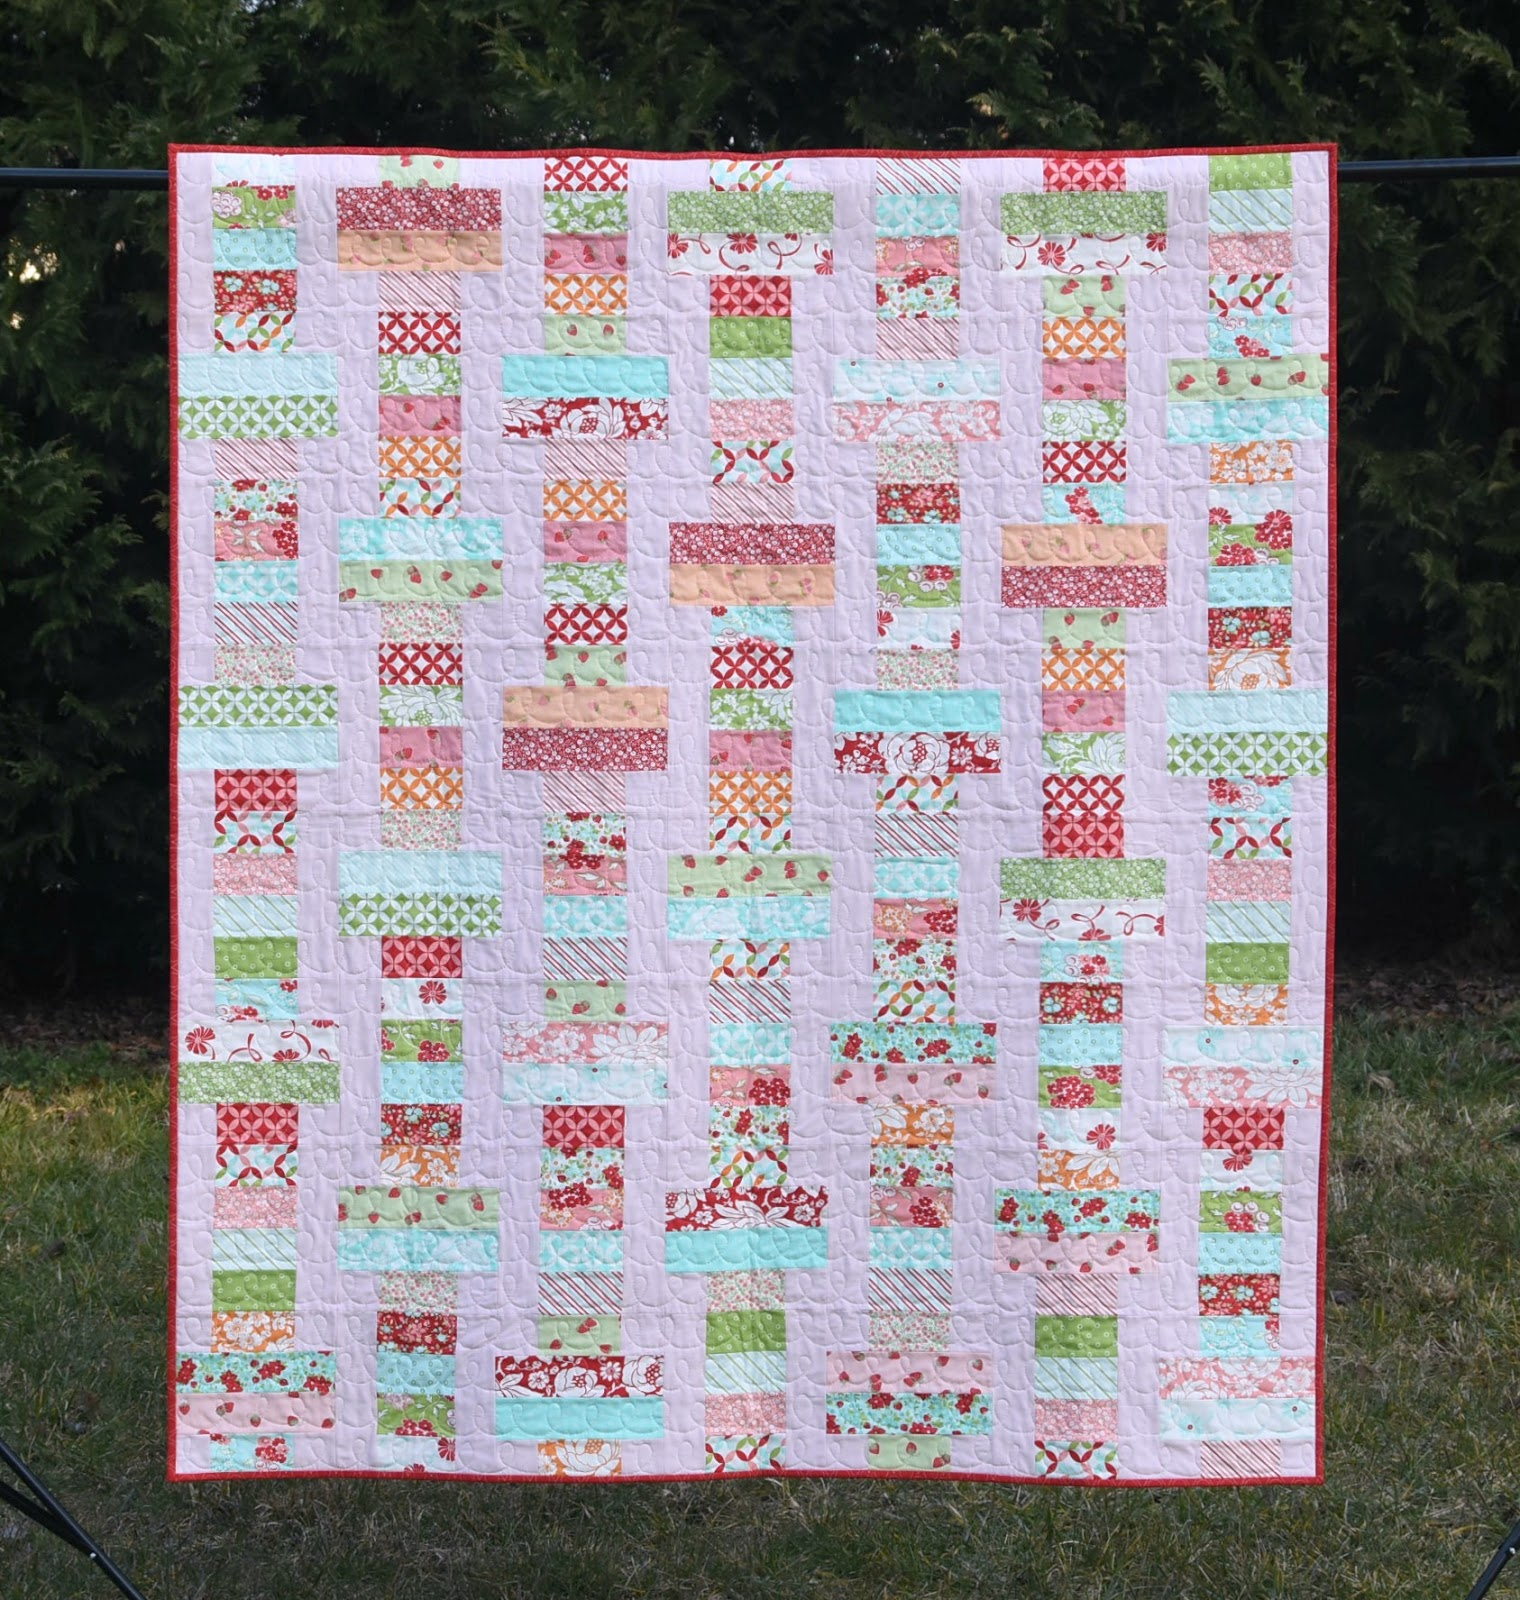 Meadow Mist Designs Jelly Slice Quilt With The Fat Quarter Shop